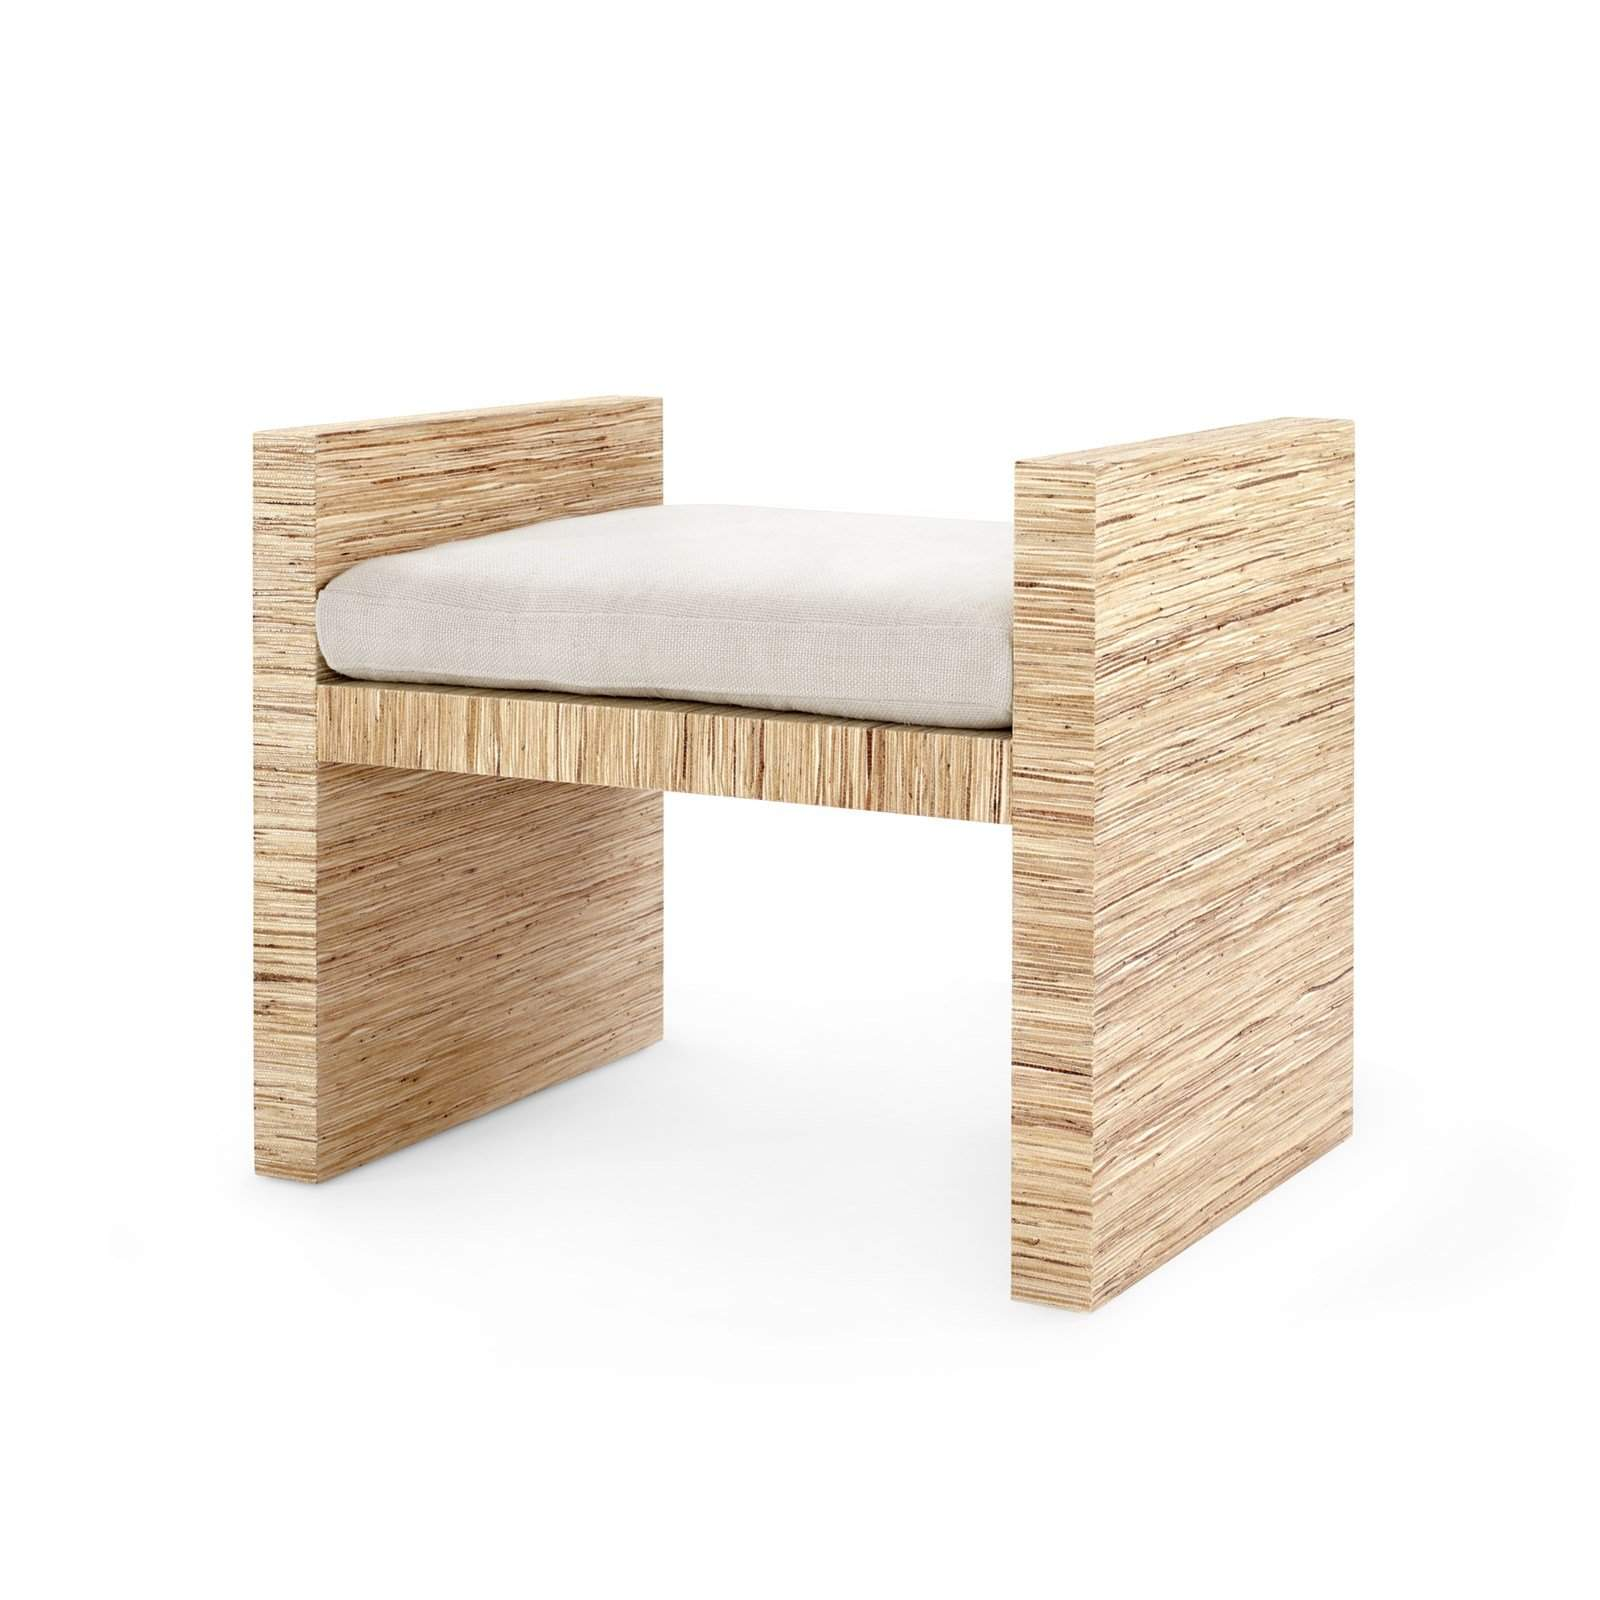 Bungalow 5 - H-BENCH in NATURAL